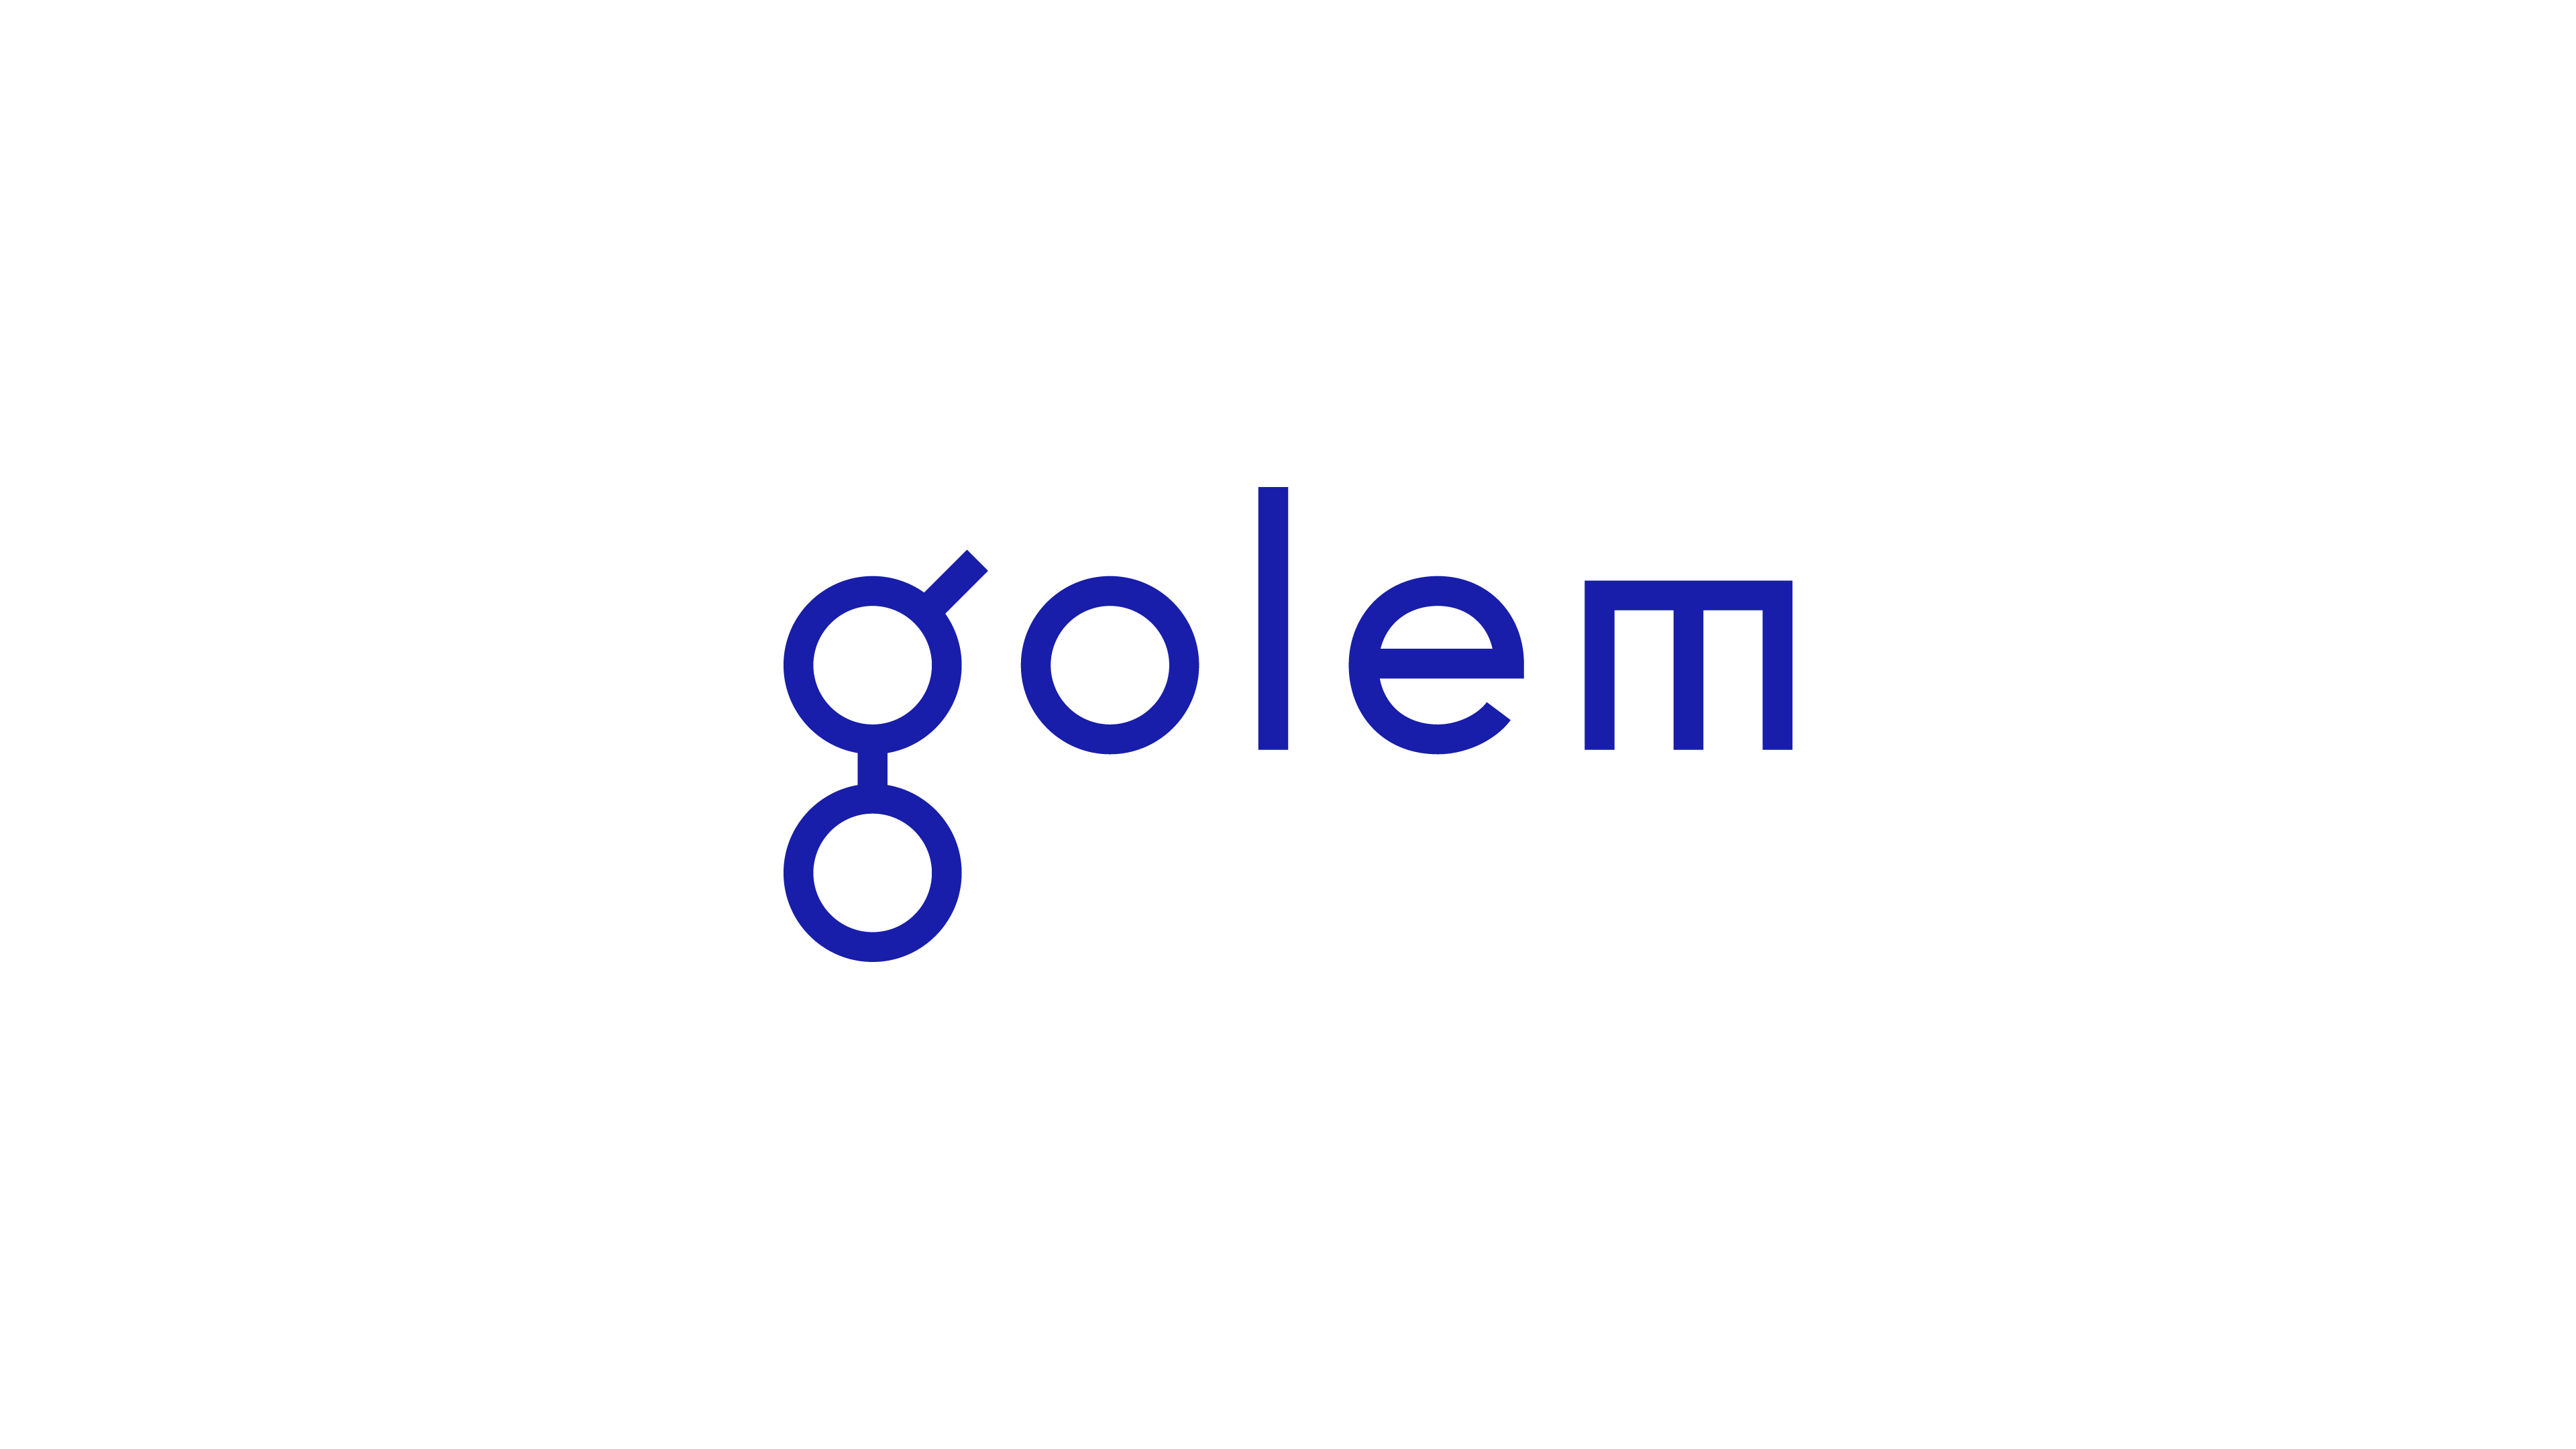 Golem  - The Codeine Design